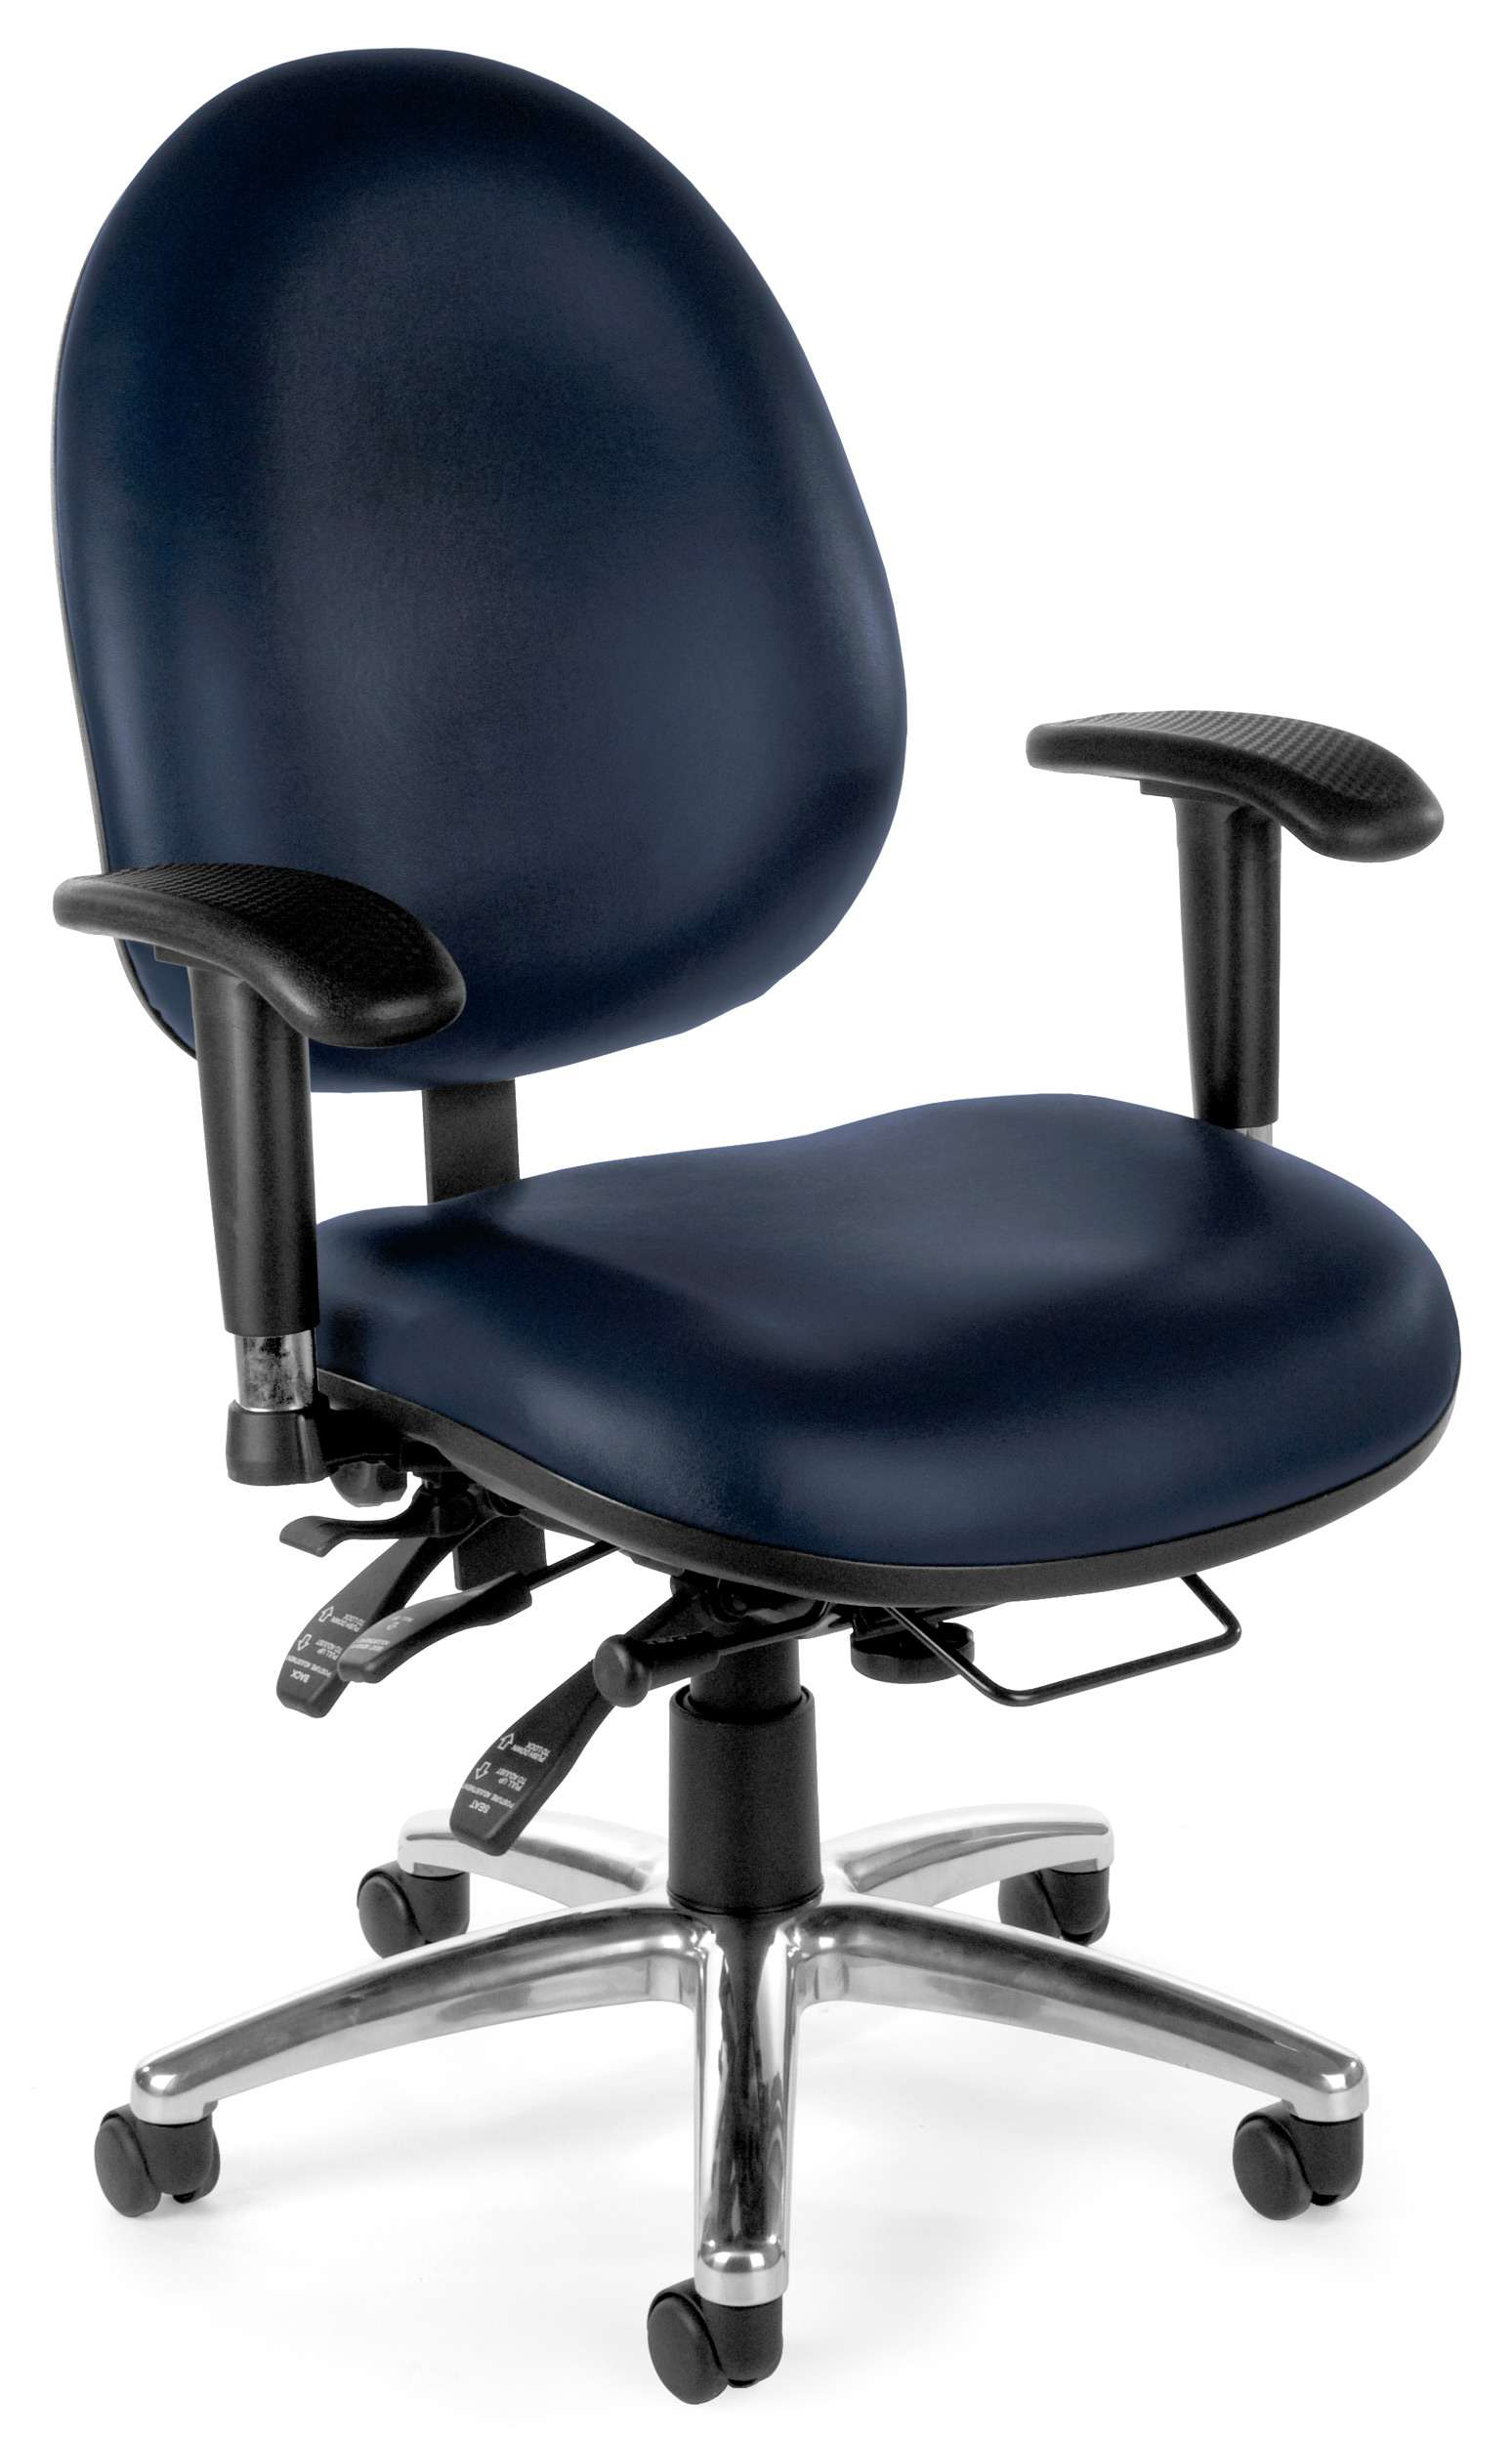 Big and tall desk chairs cub 247 vam 605 navy mfo